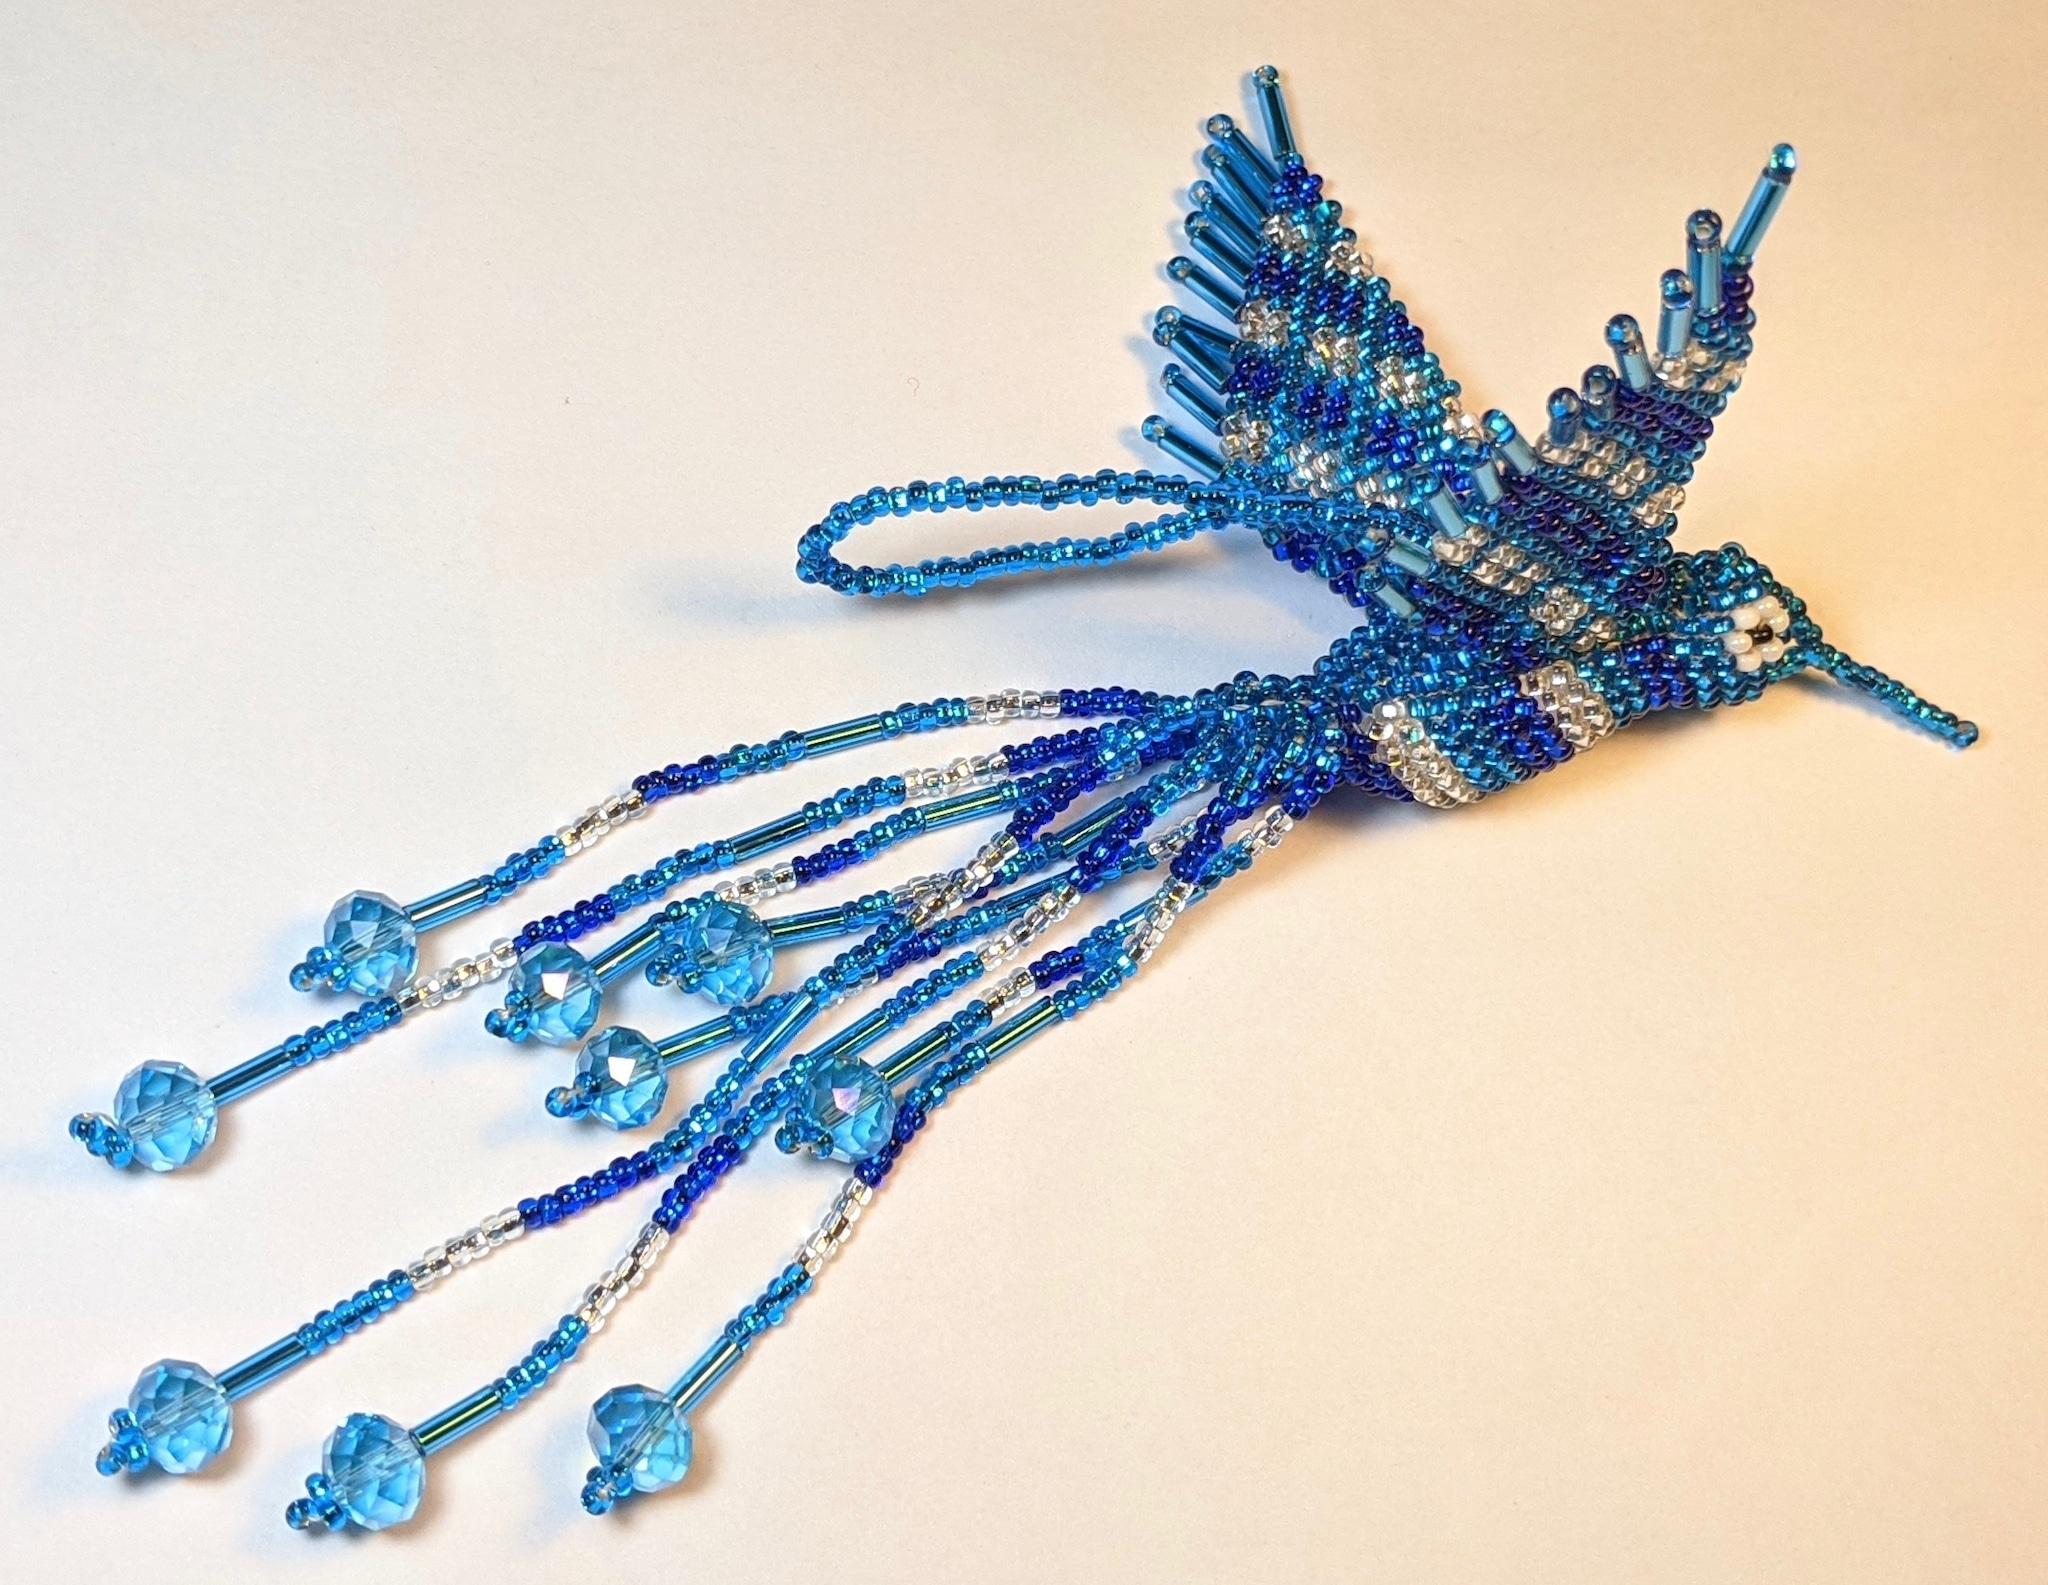 Hummingbird Beaded Ornament - Sapphire Blue, Celestial Blue, and Silver White